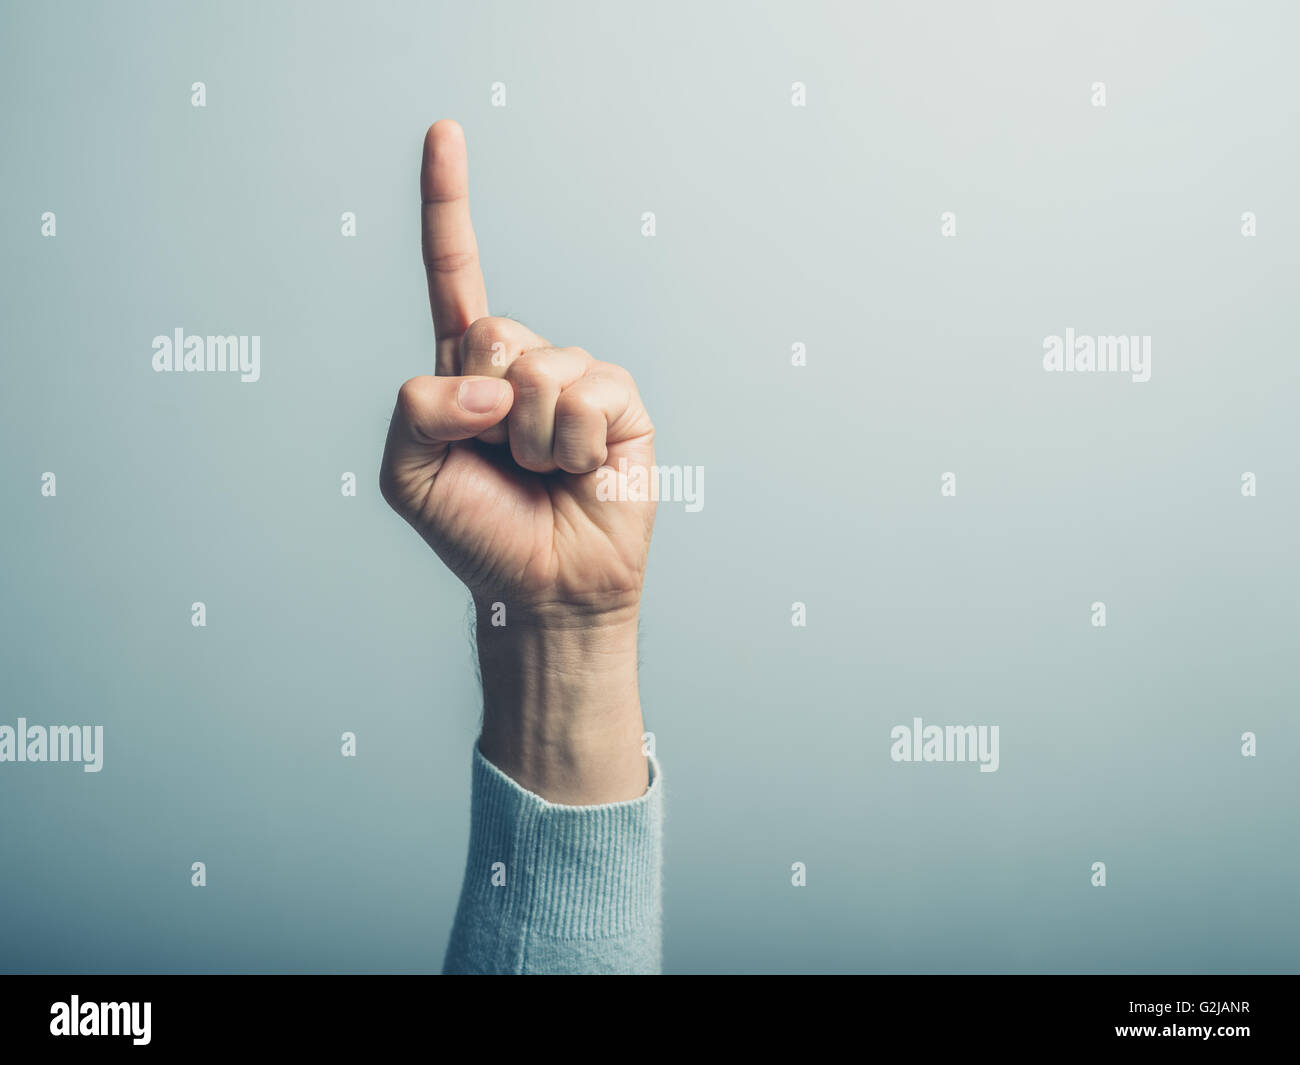 A male hand with the index finger pointing up - Stock Image